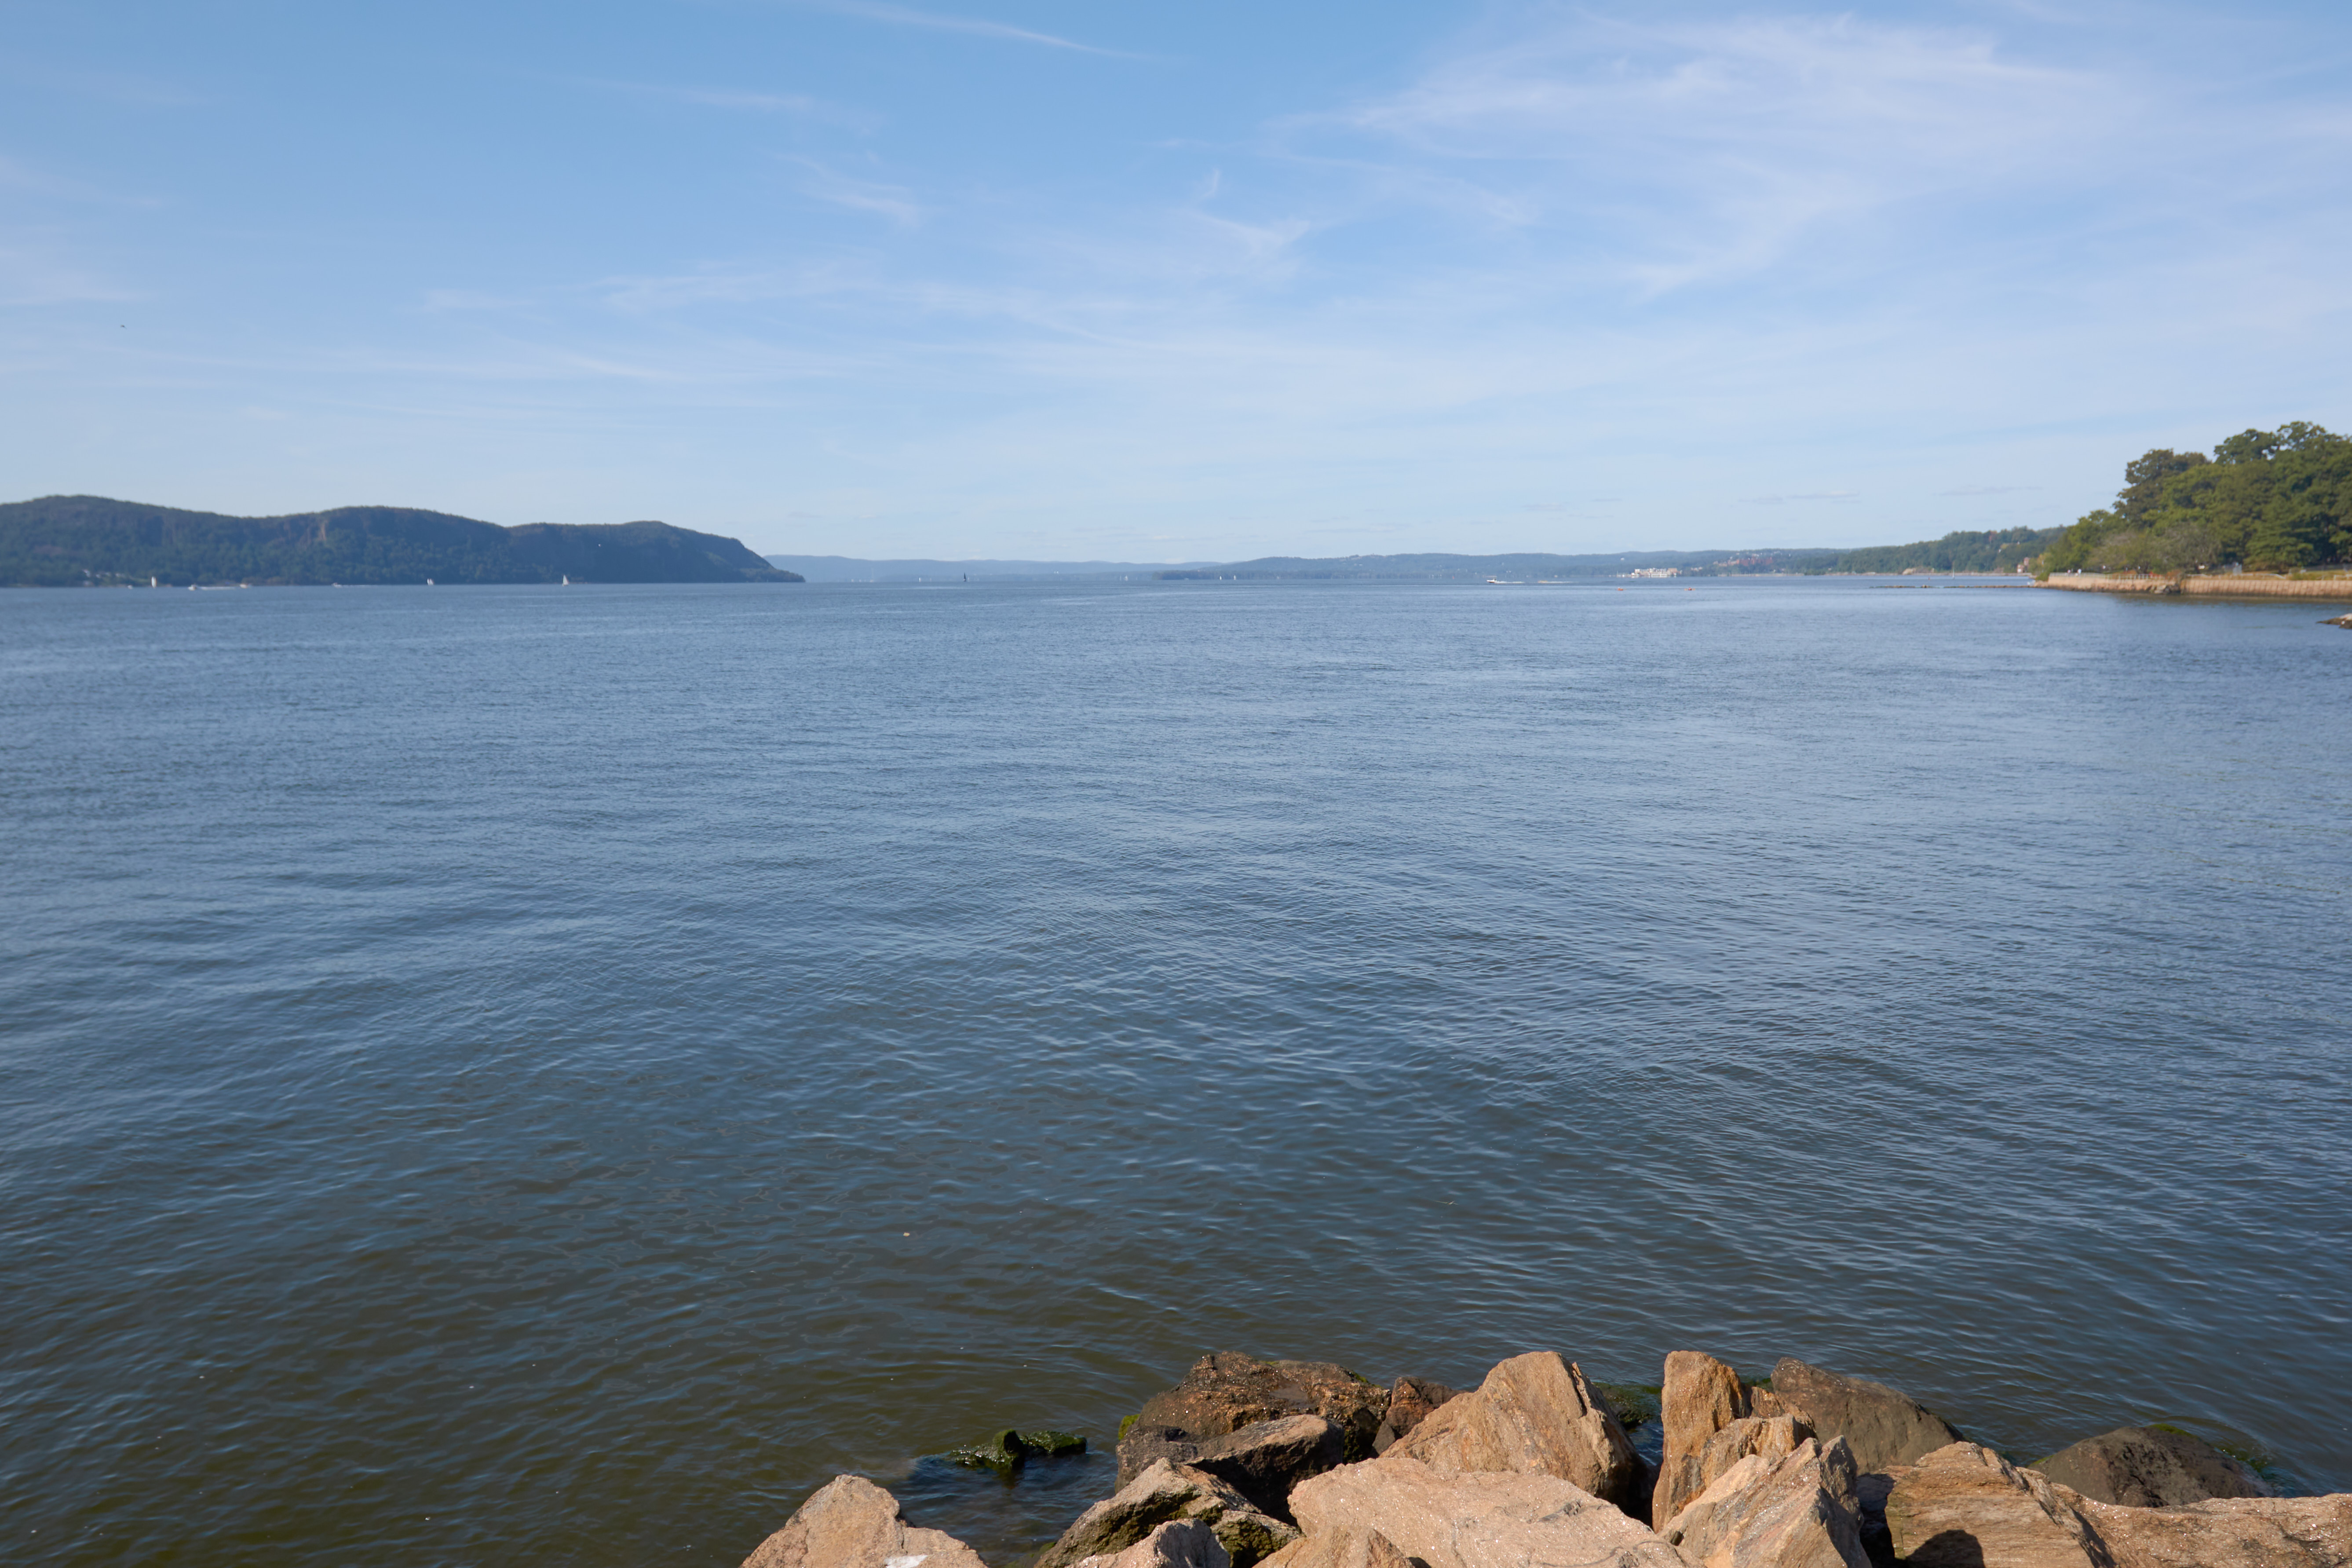 View of Hudson River, with rocks in foreground.